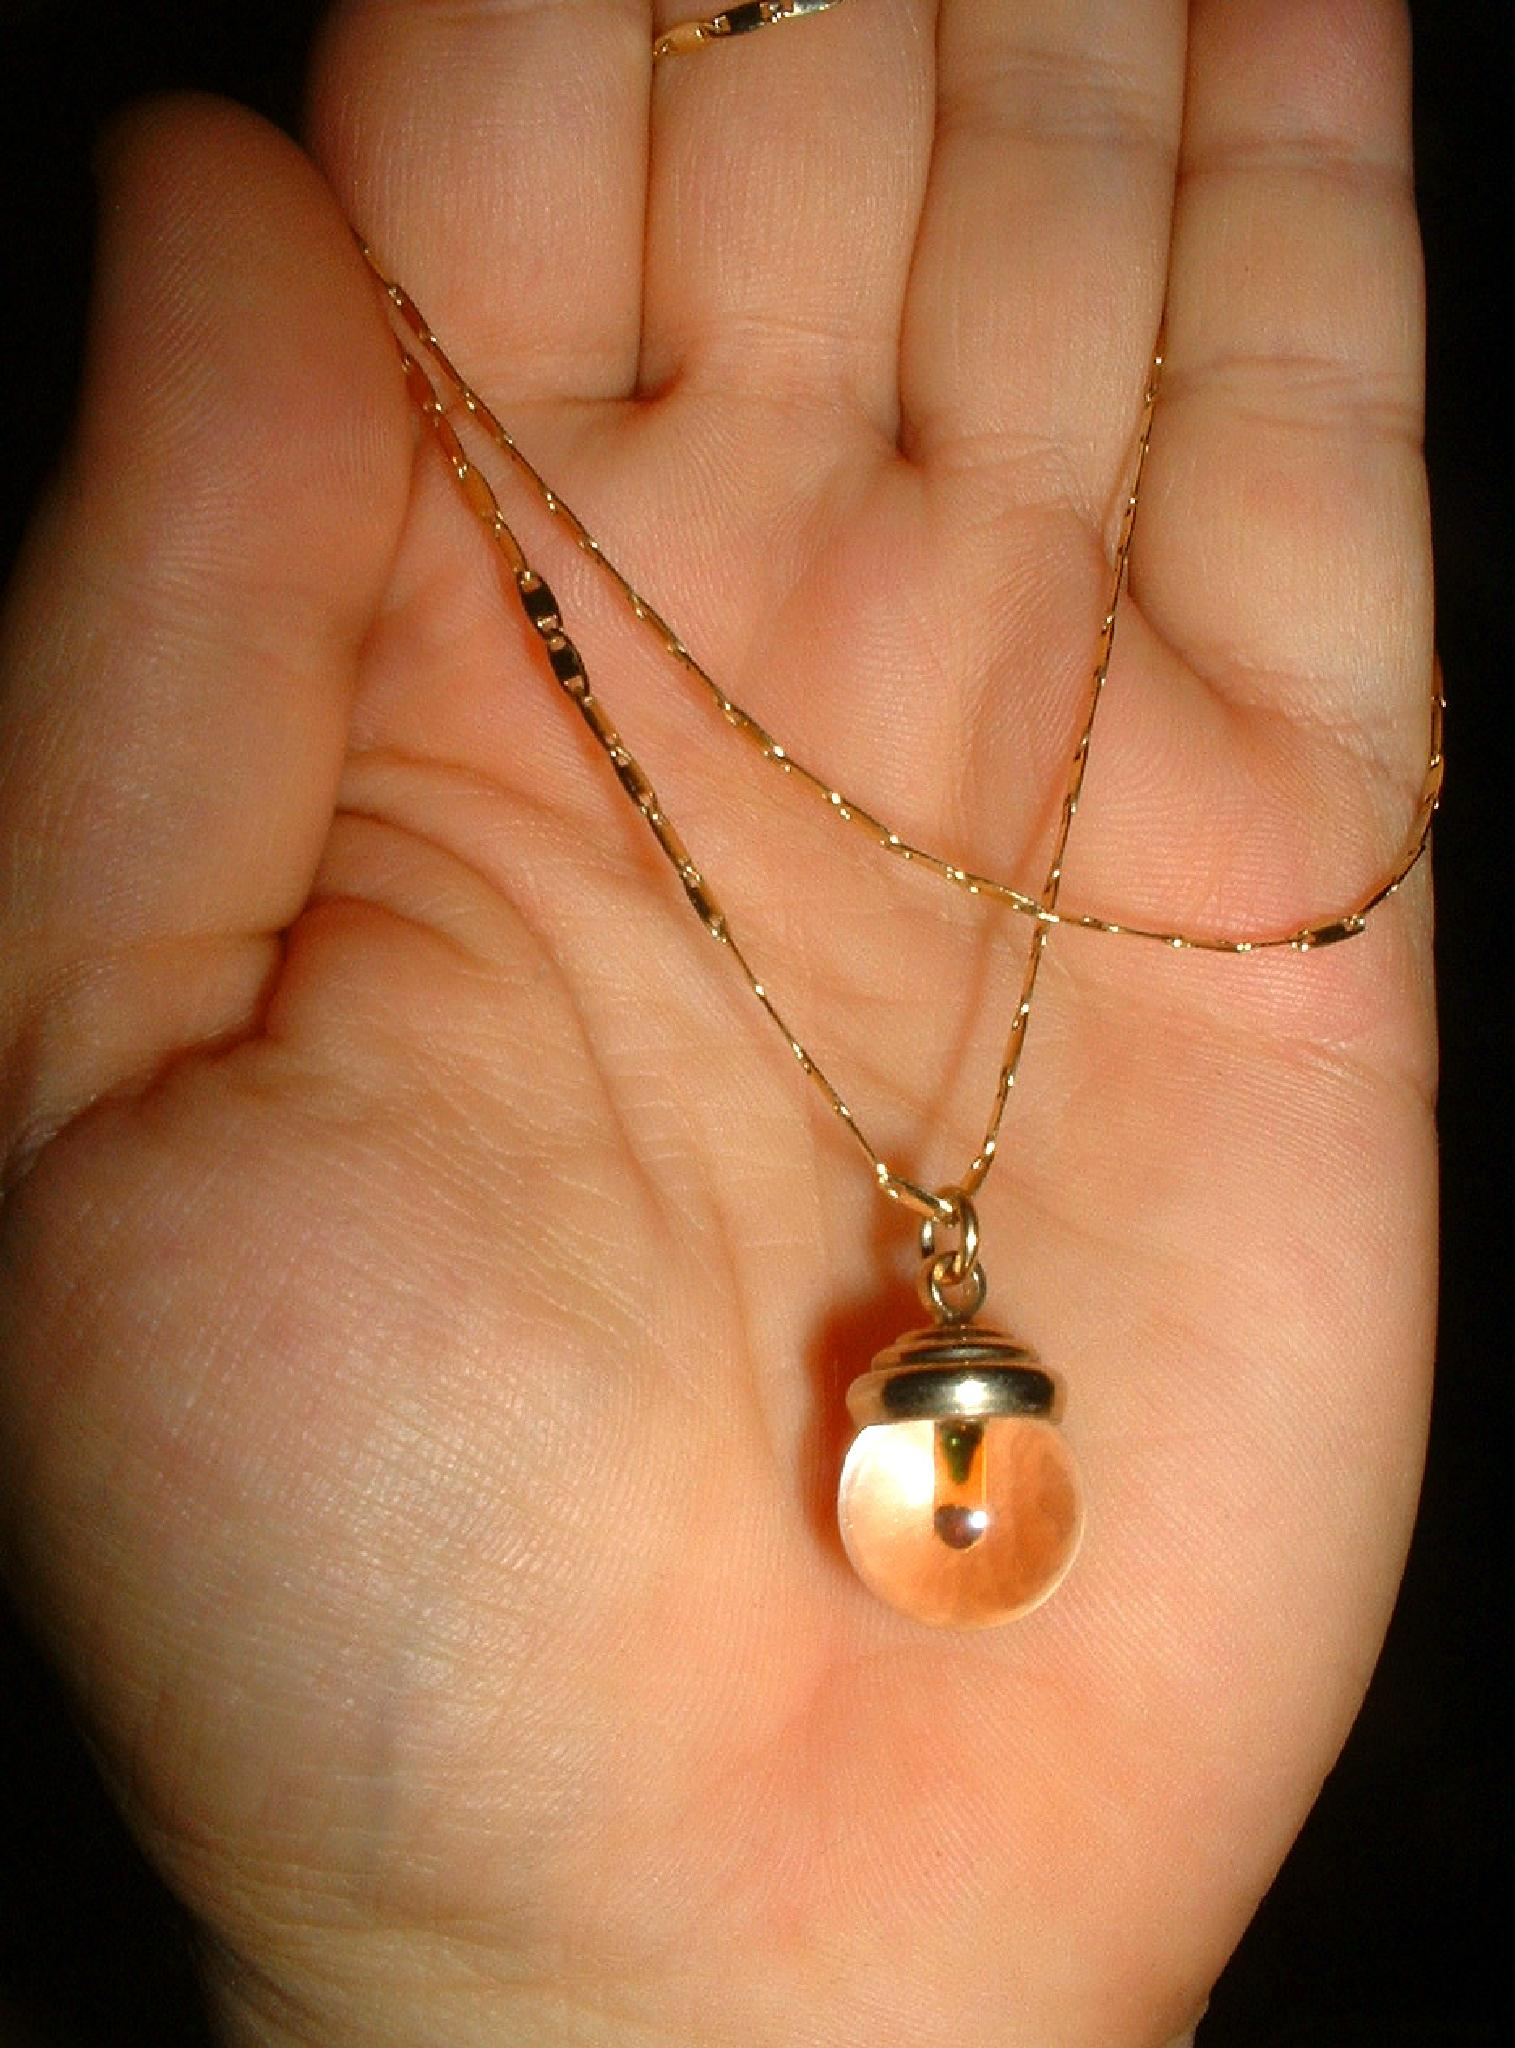 Antique Flint Mustard Seed Pendant/Necklace by kelly.zimmermanframe